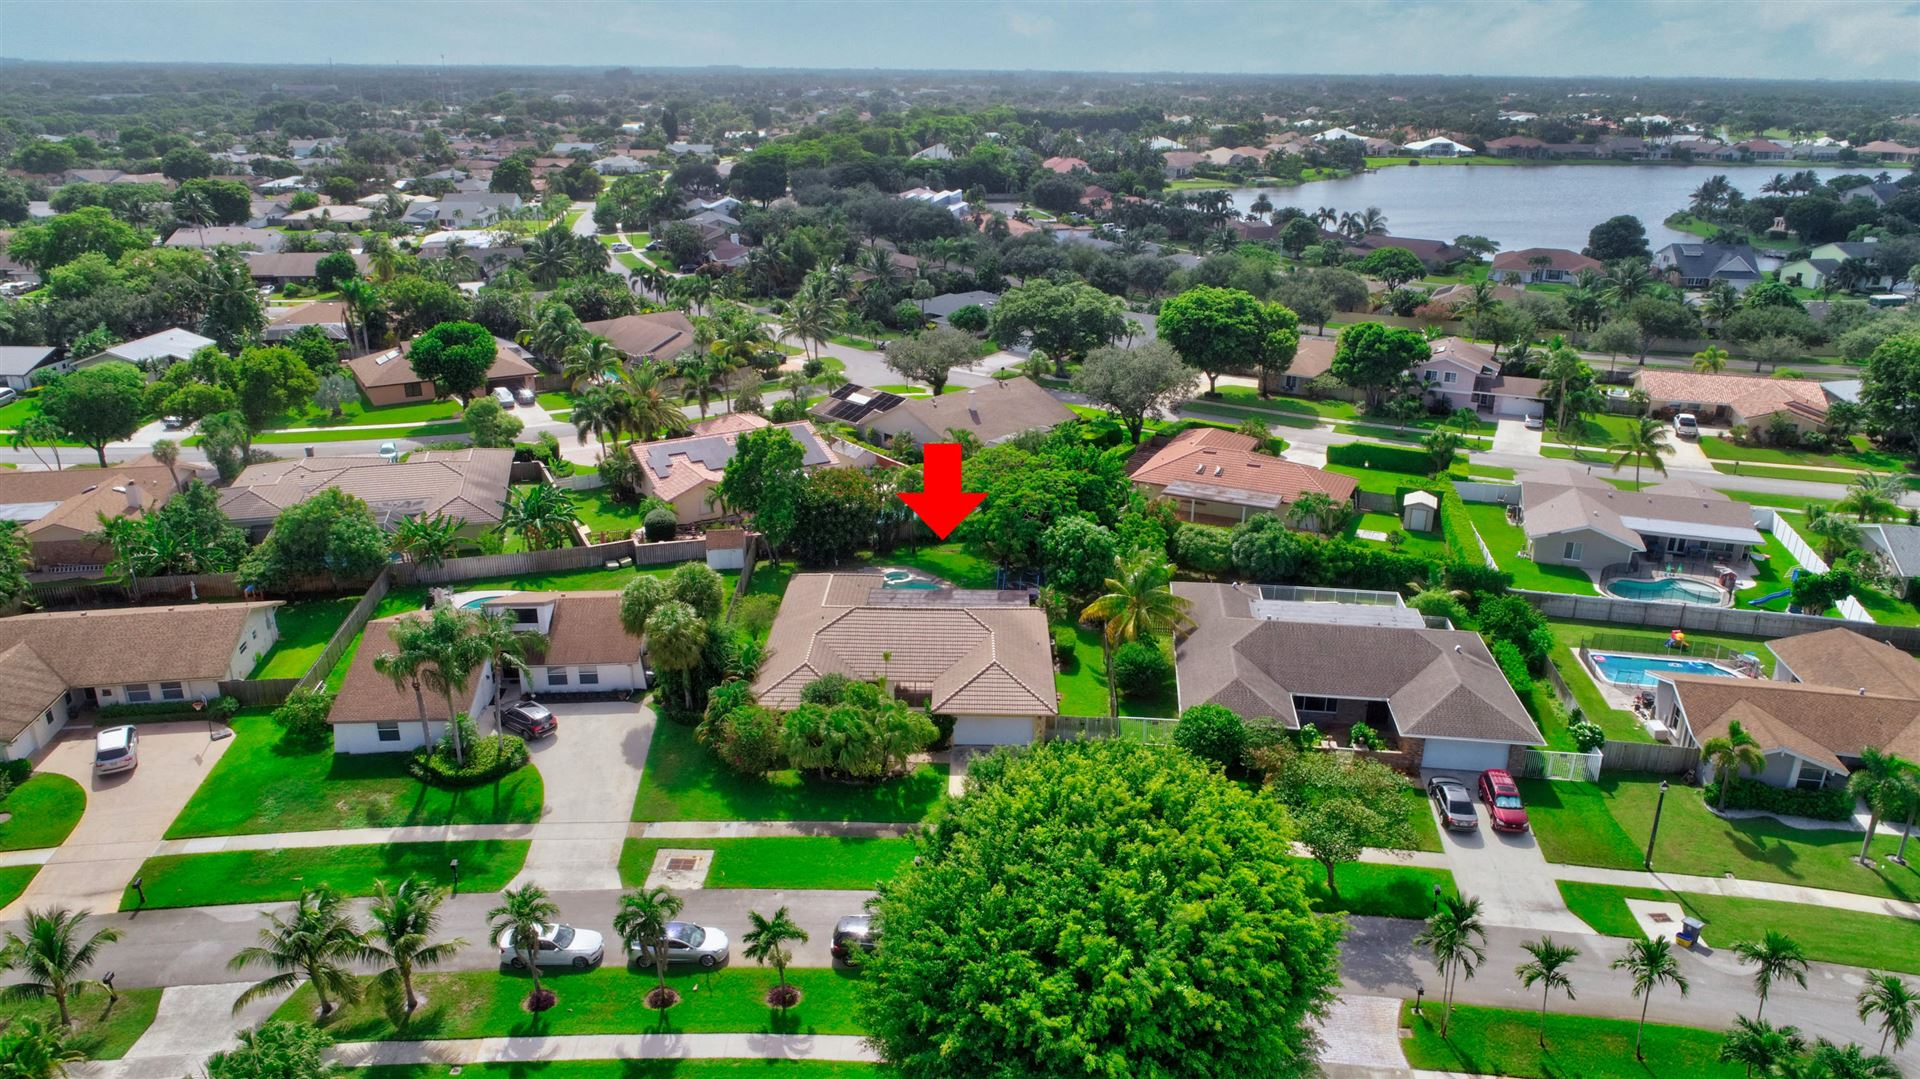 17569 Weeping Willow Trail, Boca Raton, FL 33487 - #: RX-10641658